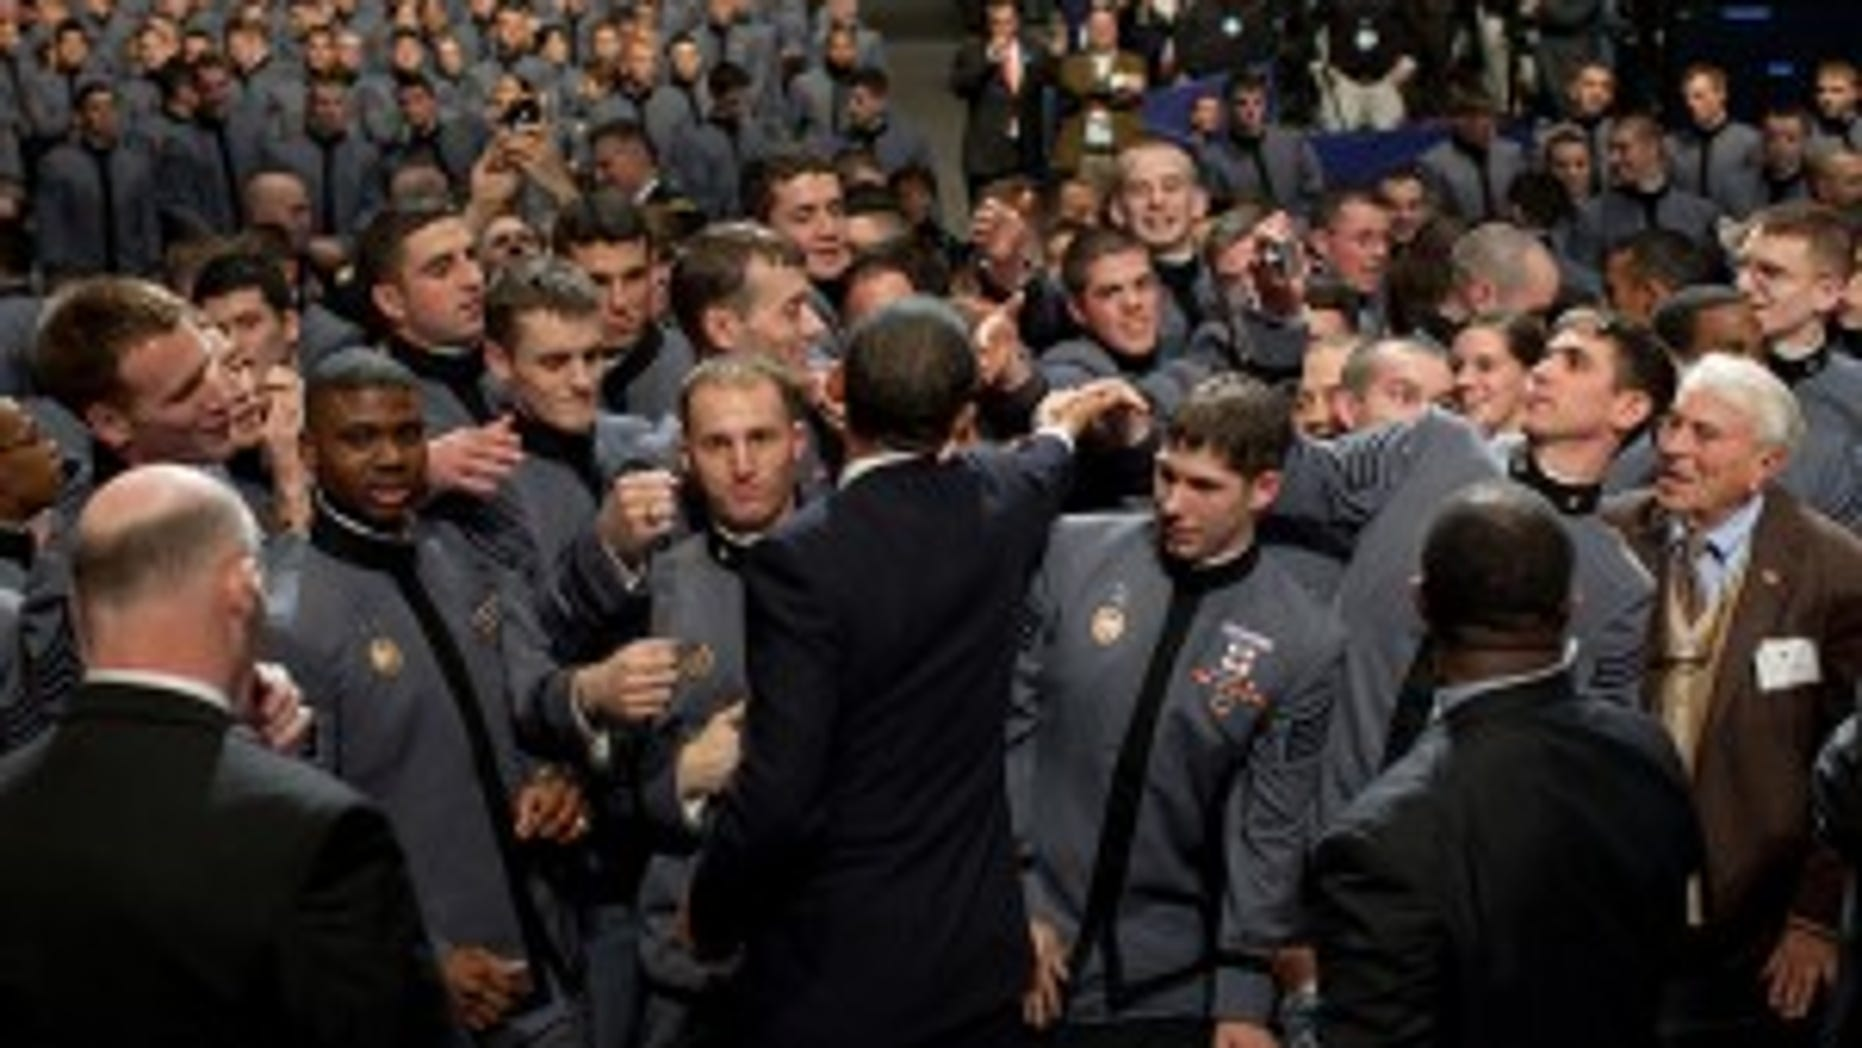 President Barack Obama greets cadets after delivering a speech on Afghanistan at the U.S. Military Academy at West Point in West Point, N.Y., Dec. 1, 2009. (Official White House Photo by Pete Souza)